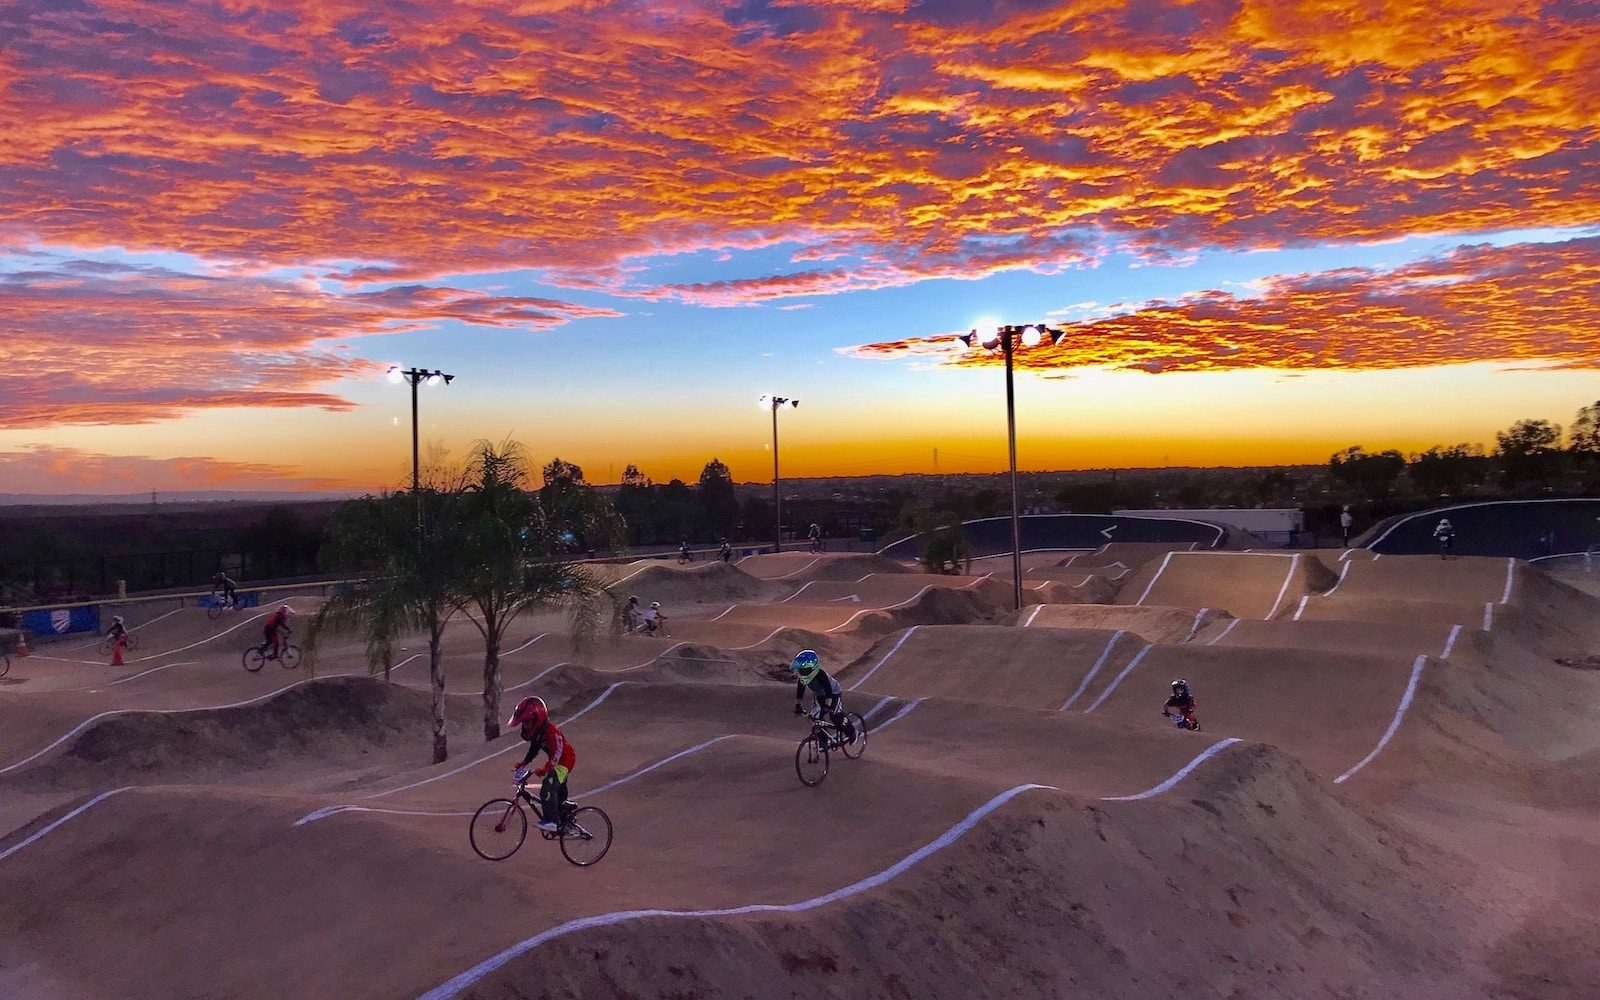 Kids on BMX bikes at sunset